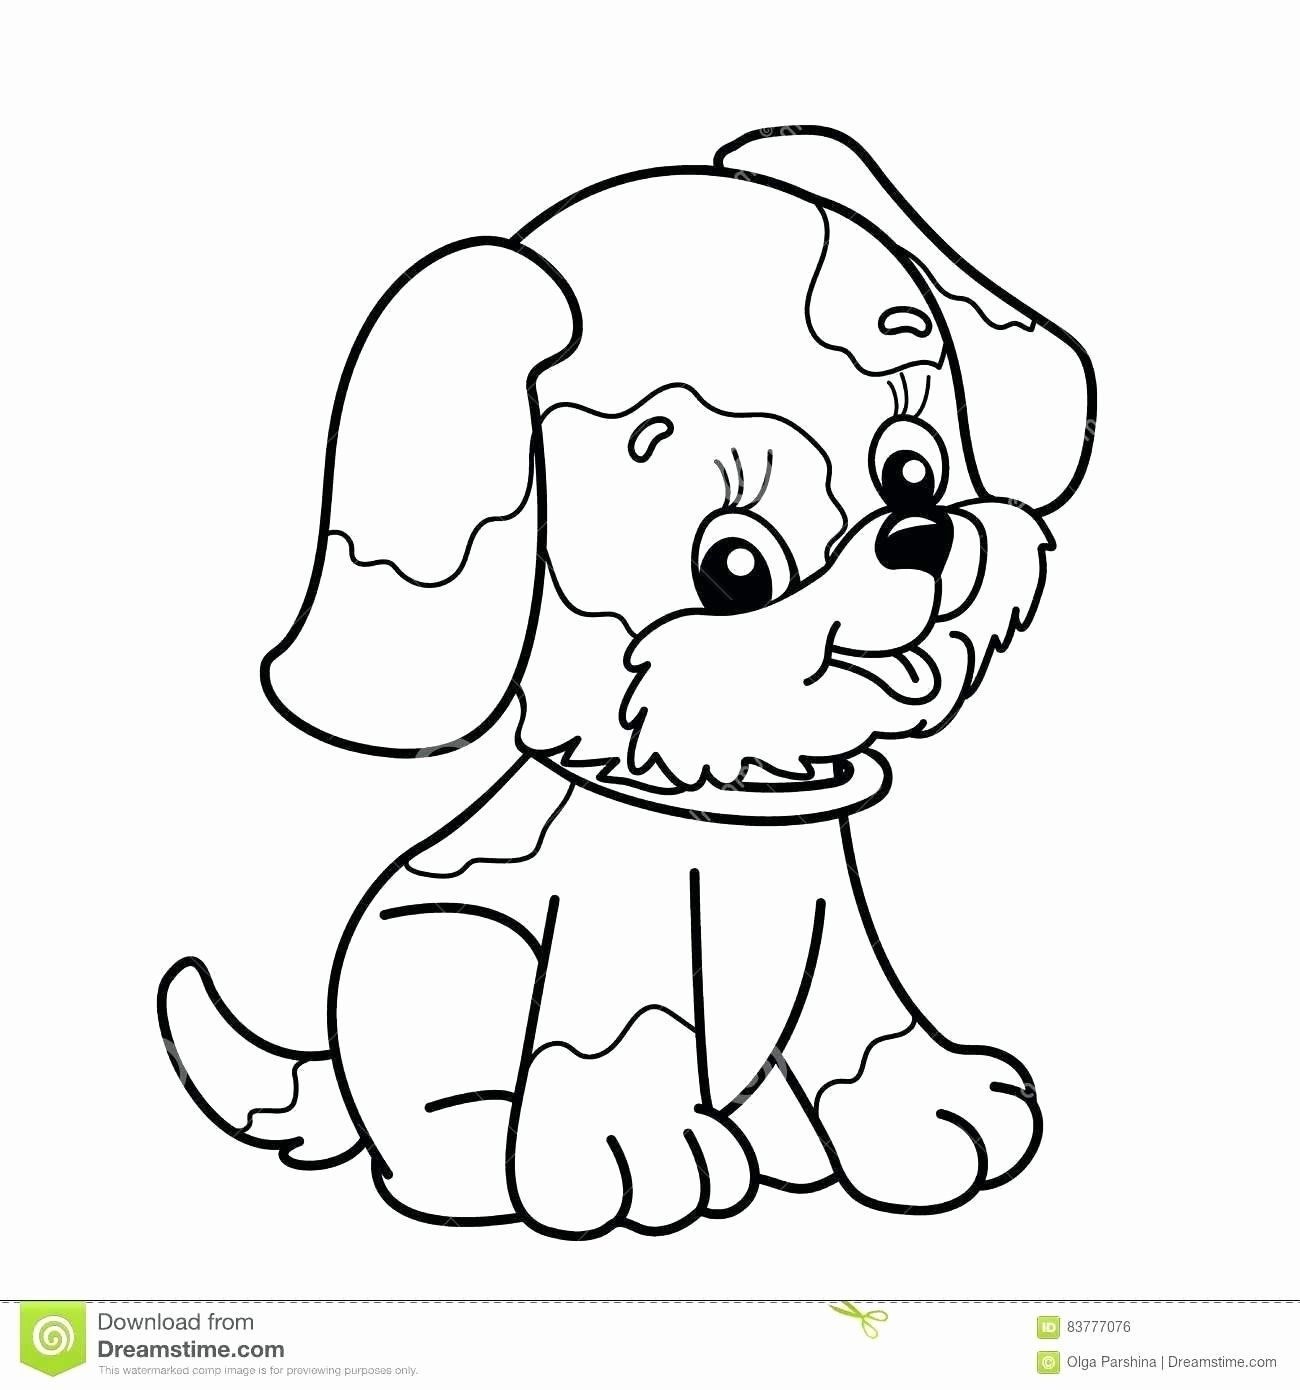 Coloring Book Cartoon Network Unique Telephone Coloring Pages Amicuscolor Cute Cartoon Drawings Cartoon Coloring Pages Dog Coloring Page